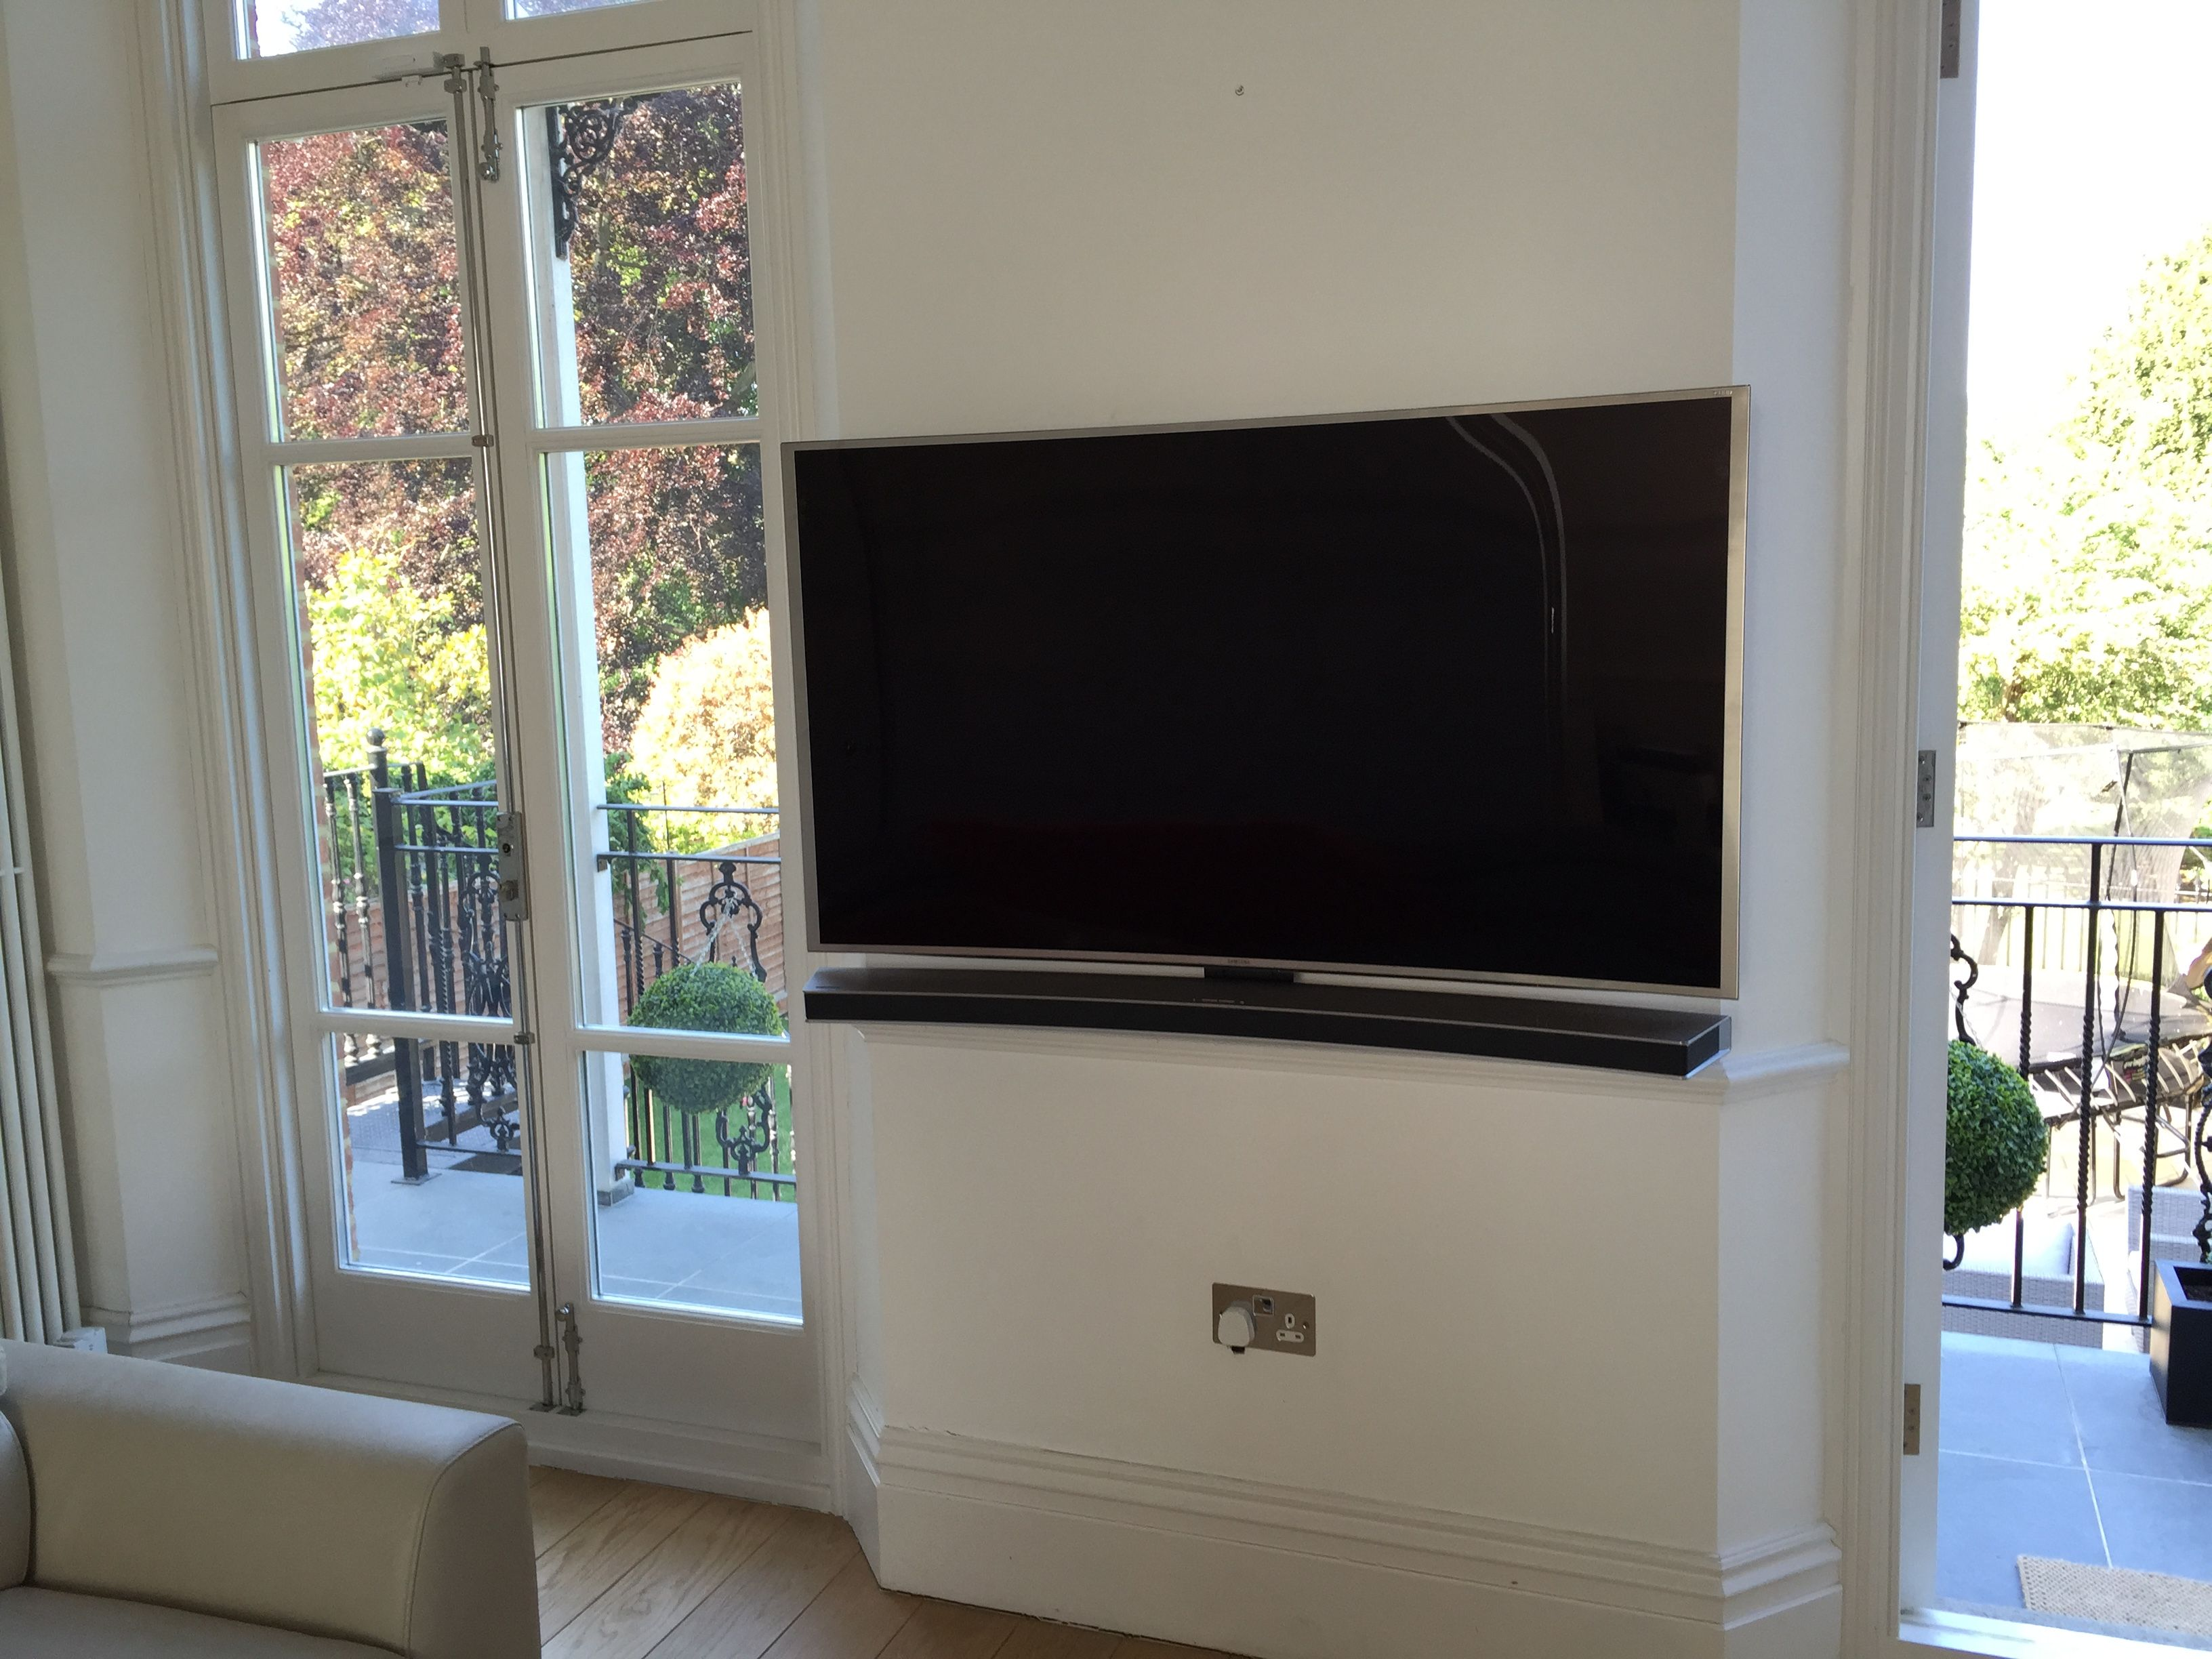 Samsung 4k Uhd Smart Curved Tv Wall Mounted With Matching